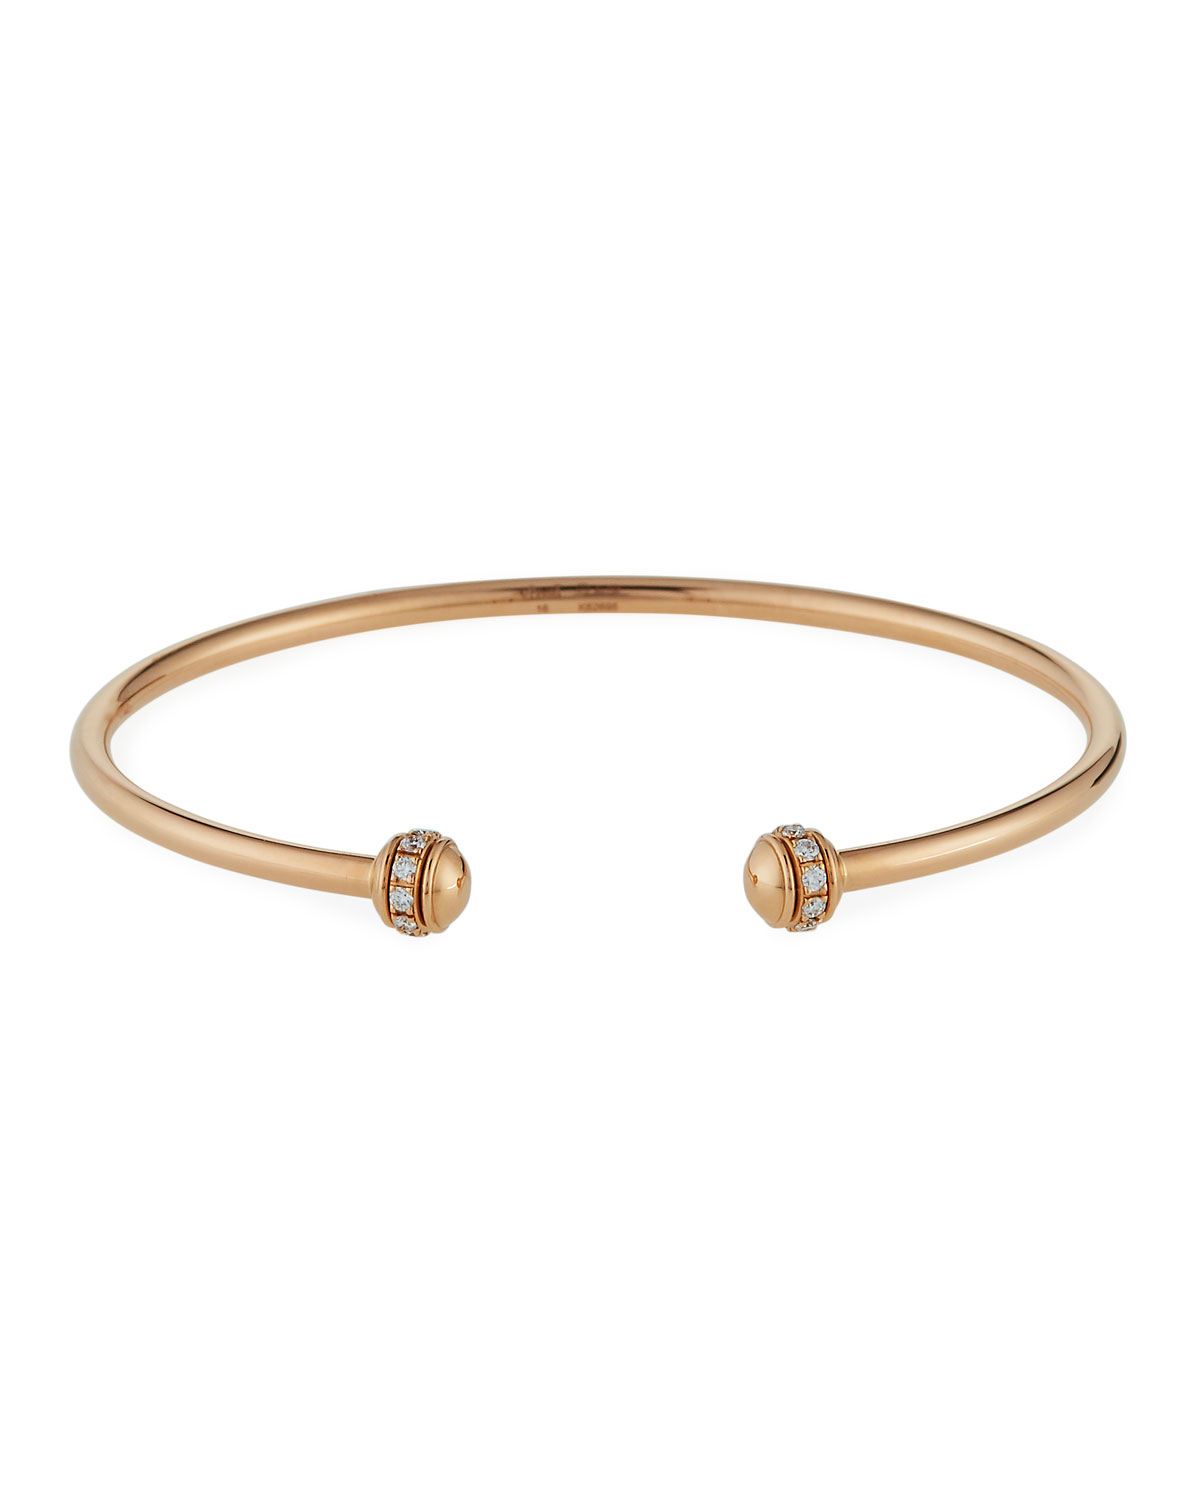 Piaget Possession Medium-Model 18K Red Gold Open Bangle with Diamonds, Size L